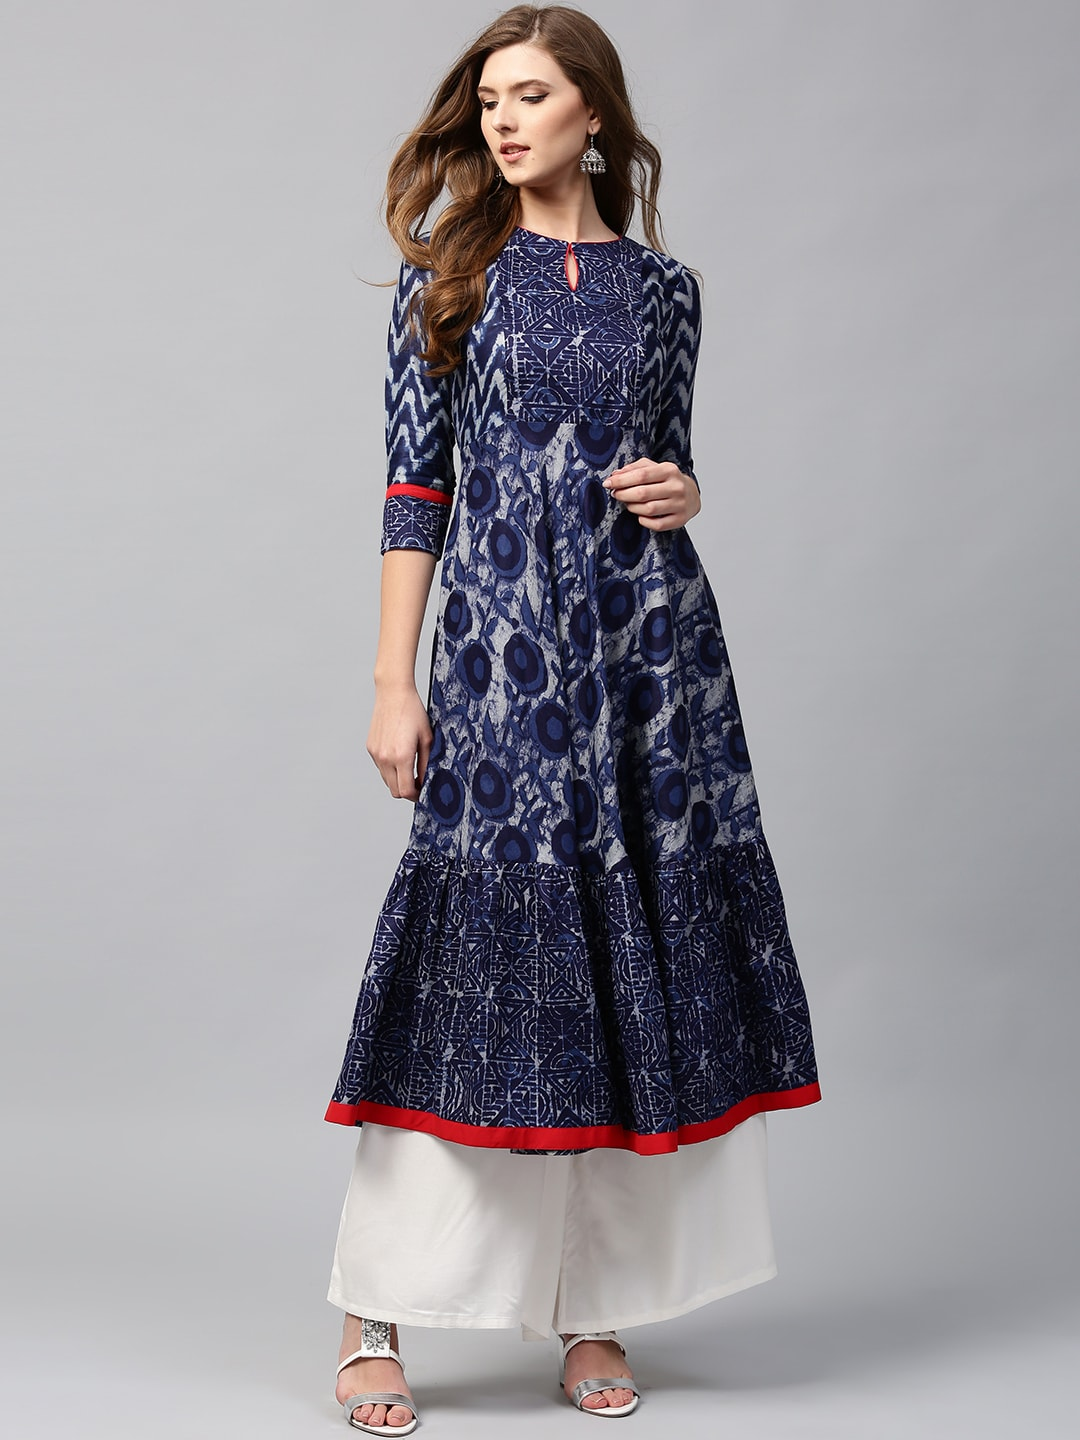 413325c69 Libas Navy Blue Printed Anarkali for women price in India on 30th ...